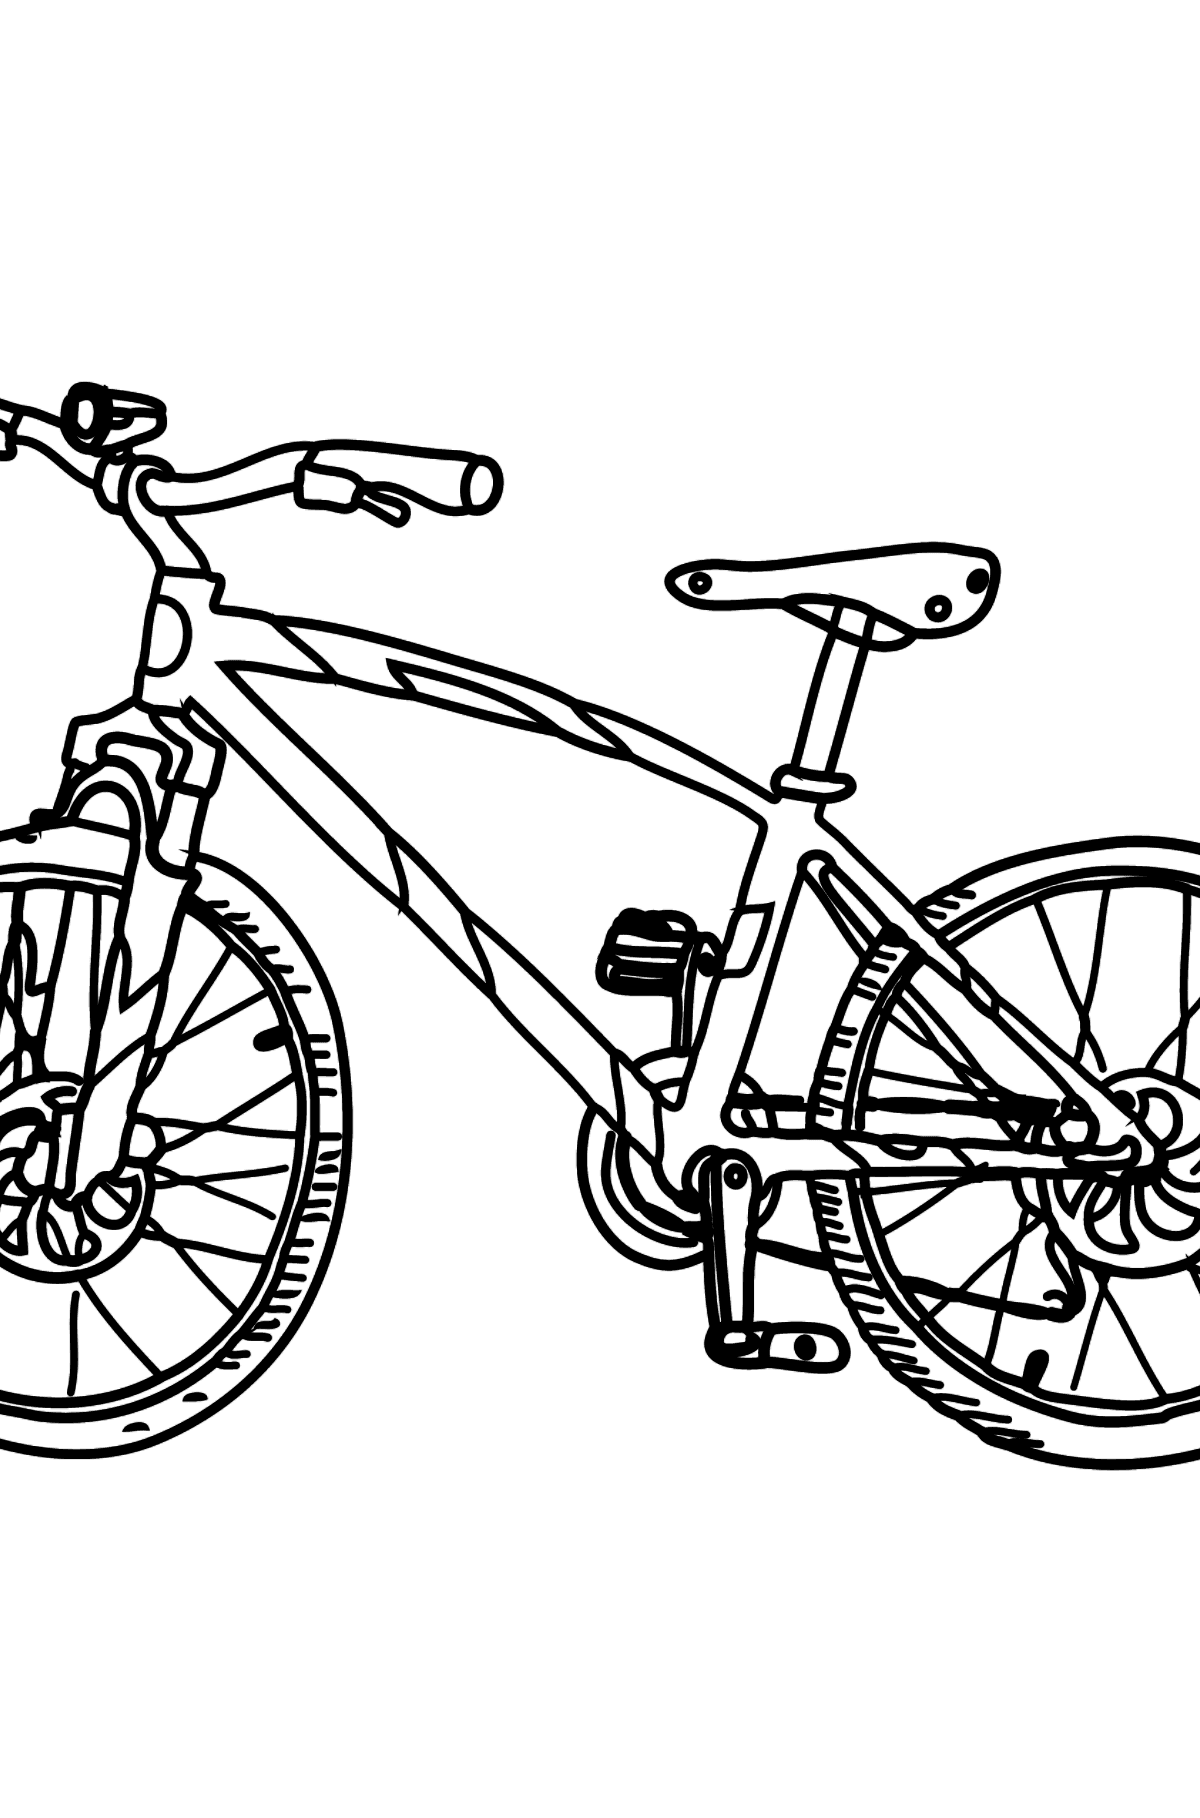 Coloring Page - A Sport Bike - Coloring Pages for Kids